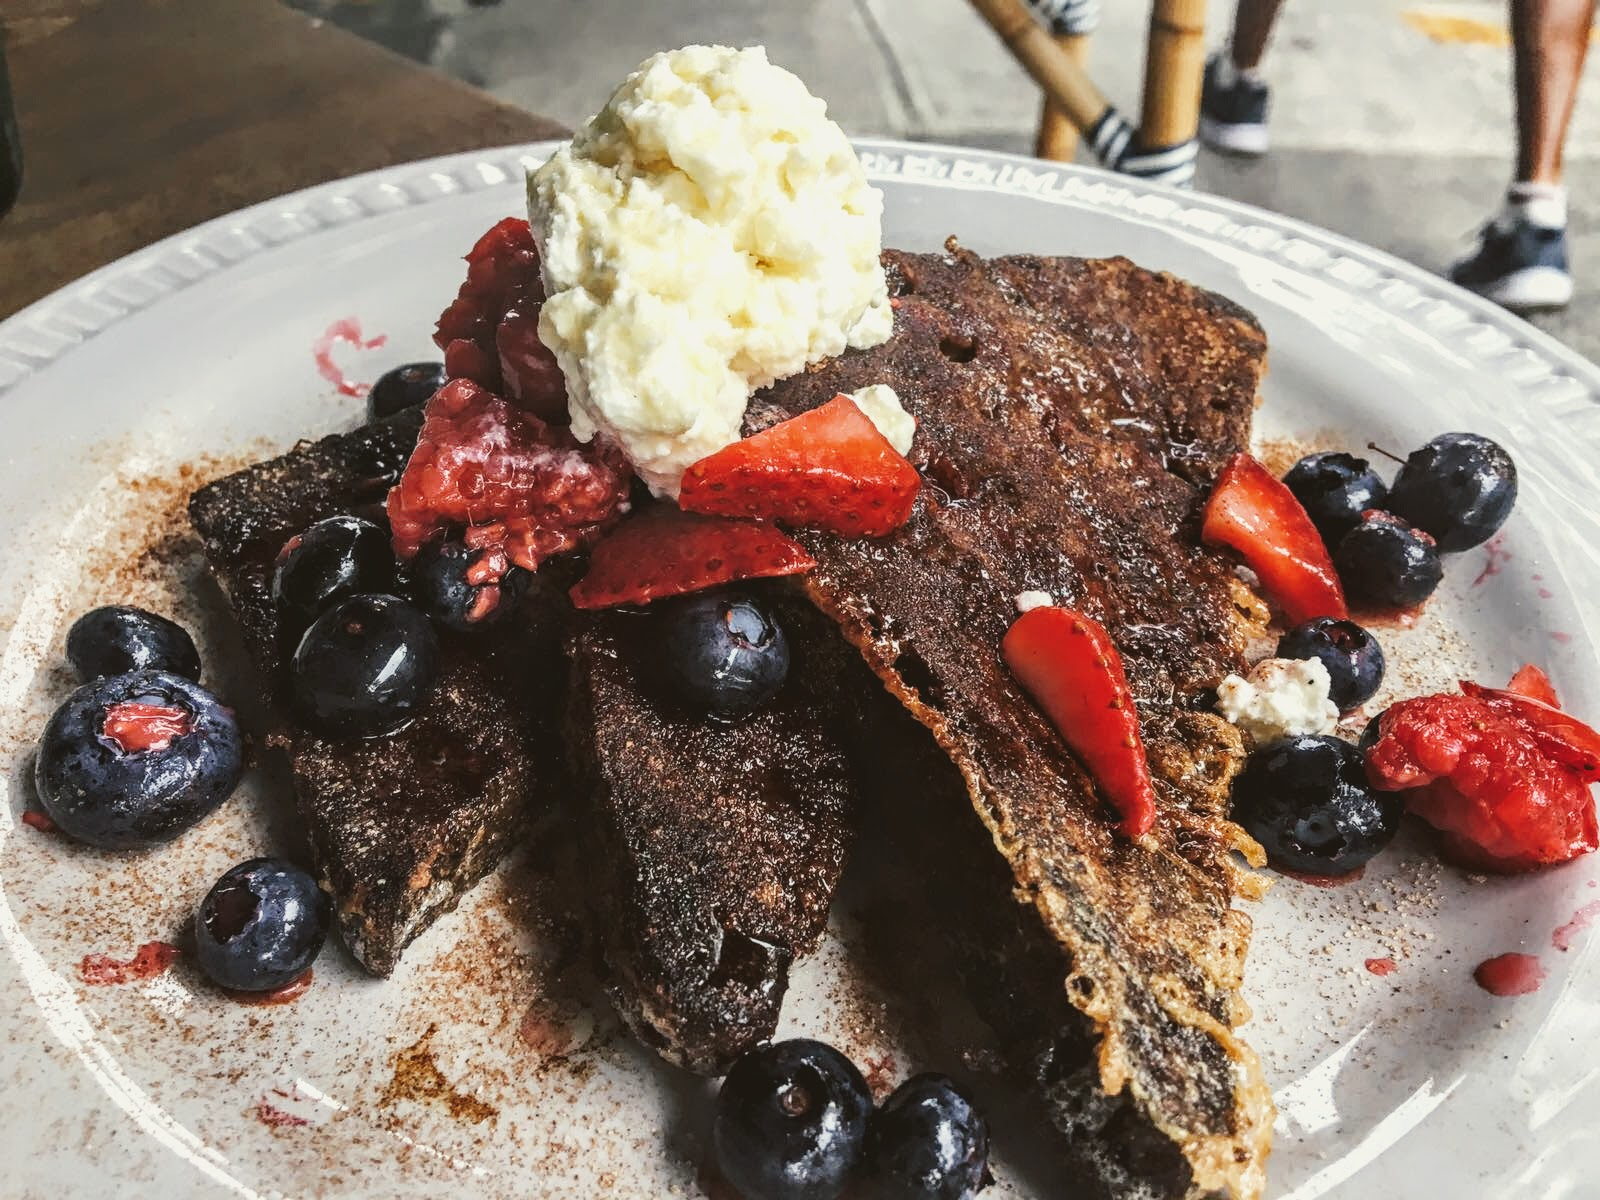 French toast with cinnamon, ricotta and fresh berries